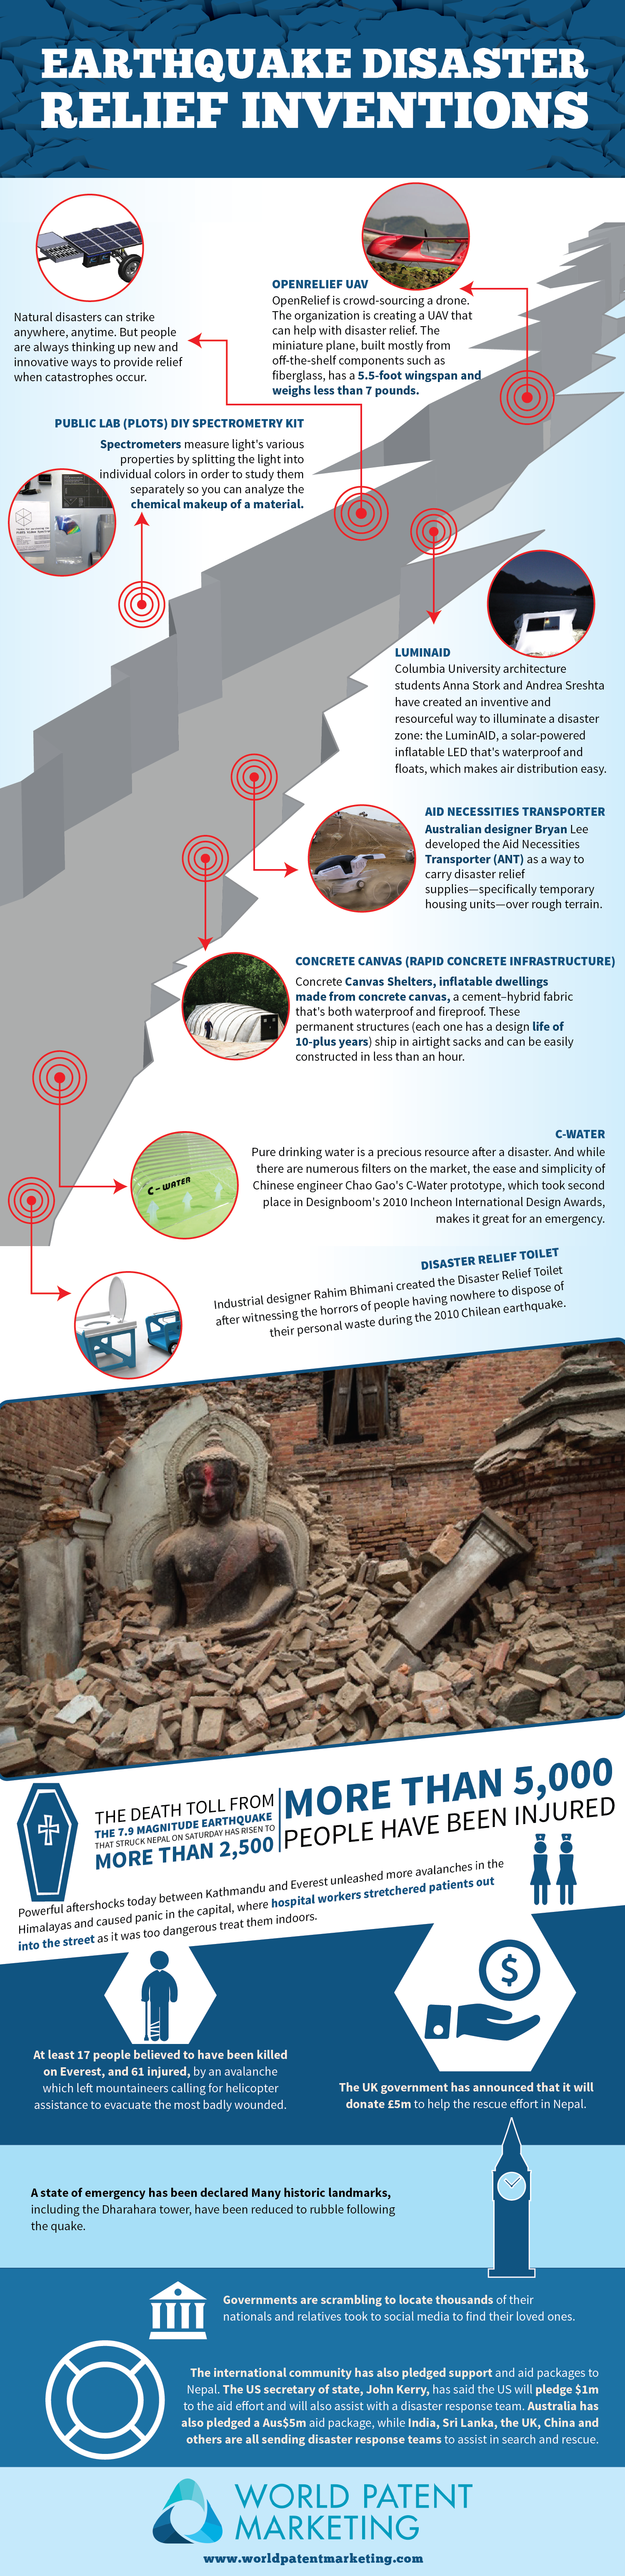 Earthquake Disaster Relief Inventions  Earthquakes are unpredictable and destructive, http://worldpatentmarketing.net/earthquake-disaster-relief-inventions/. Thankfully some inventors have developed earthquake disaster relief inventions to help us survive these events. World Patent Marketing is the most innovative patent protection company in the US. Contact World Patent Marketing on their site now at https://worldpatentmarketing.com/submit_idea  #inventioninfographics #worldpatentmarketing